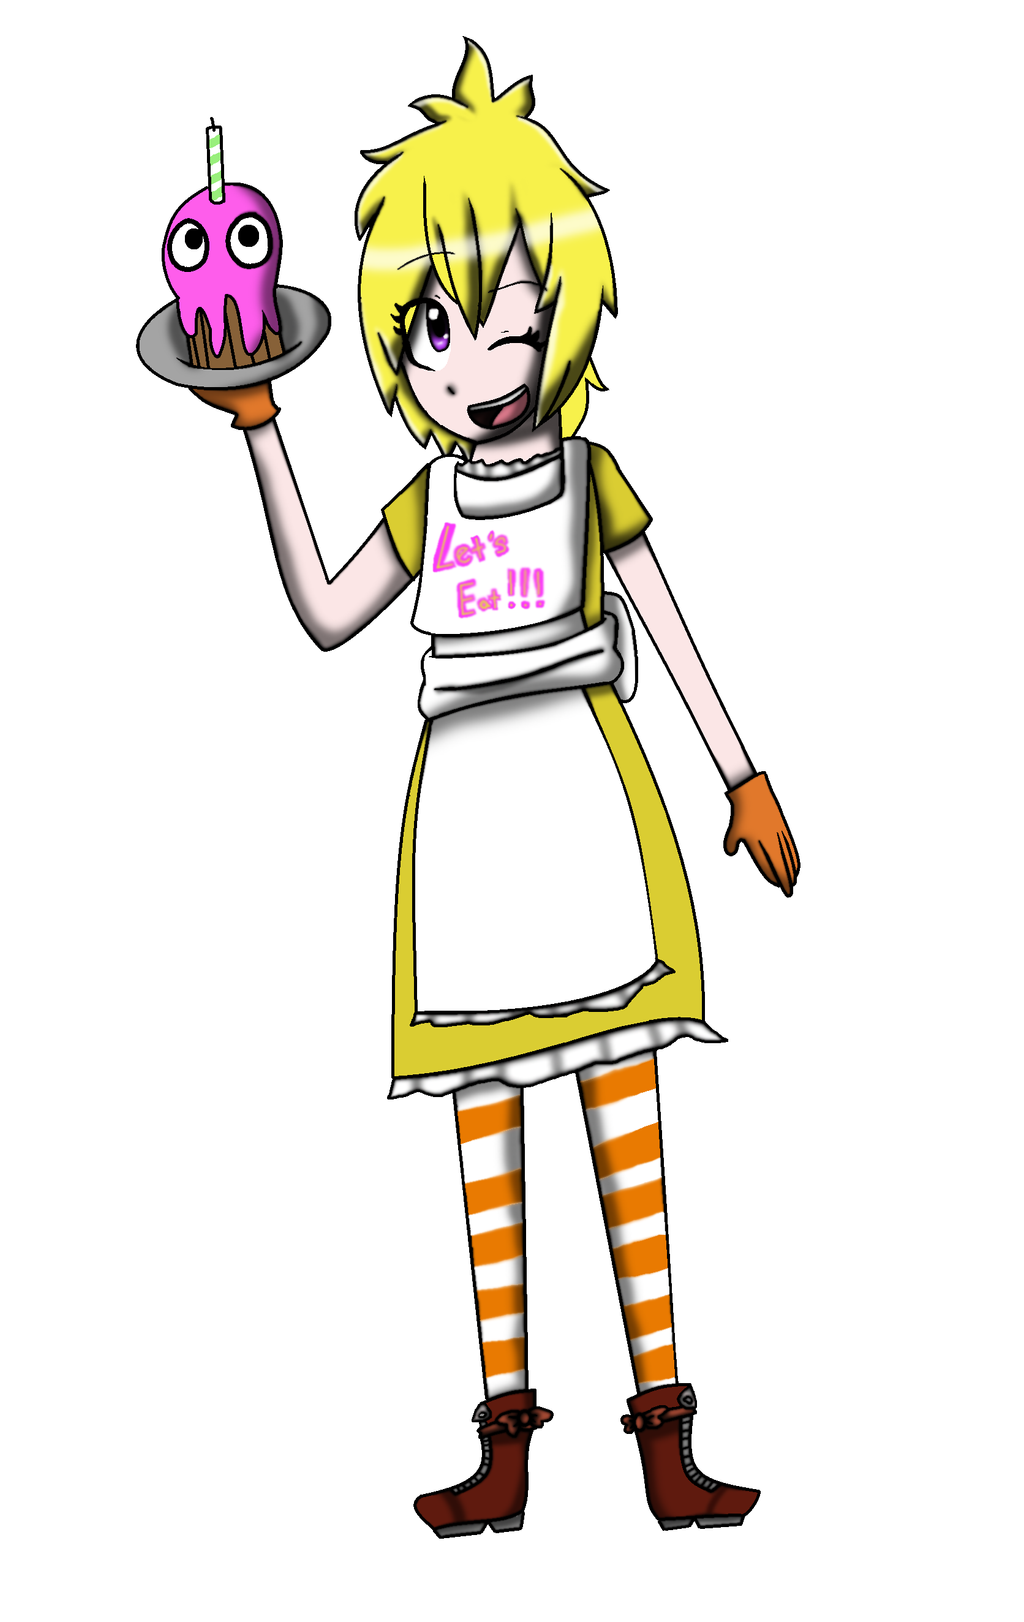 Human chica fnaf unfinished by thesilentmusicbox on deviantart